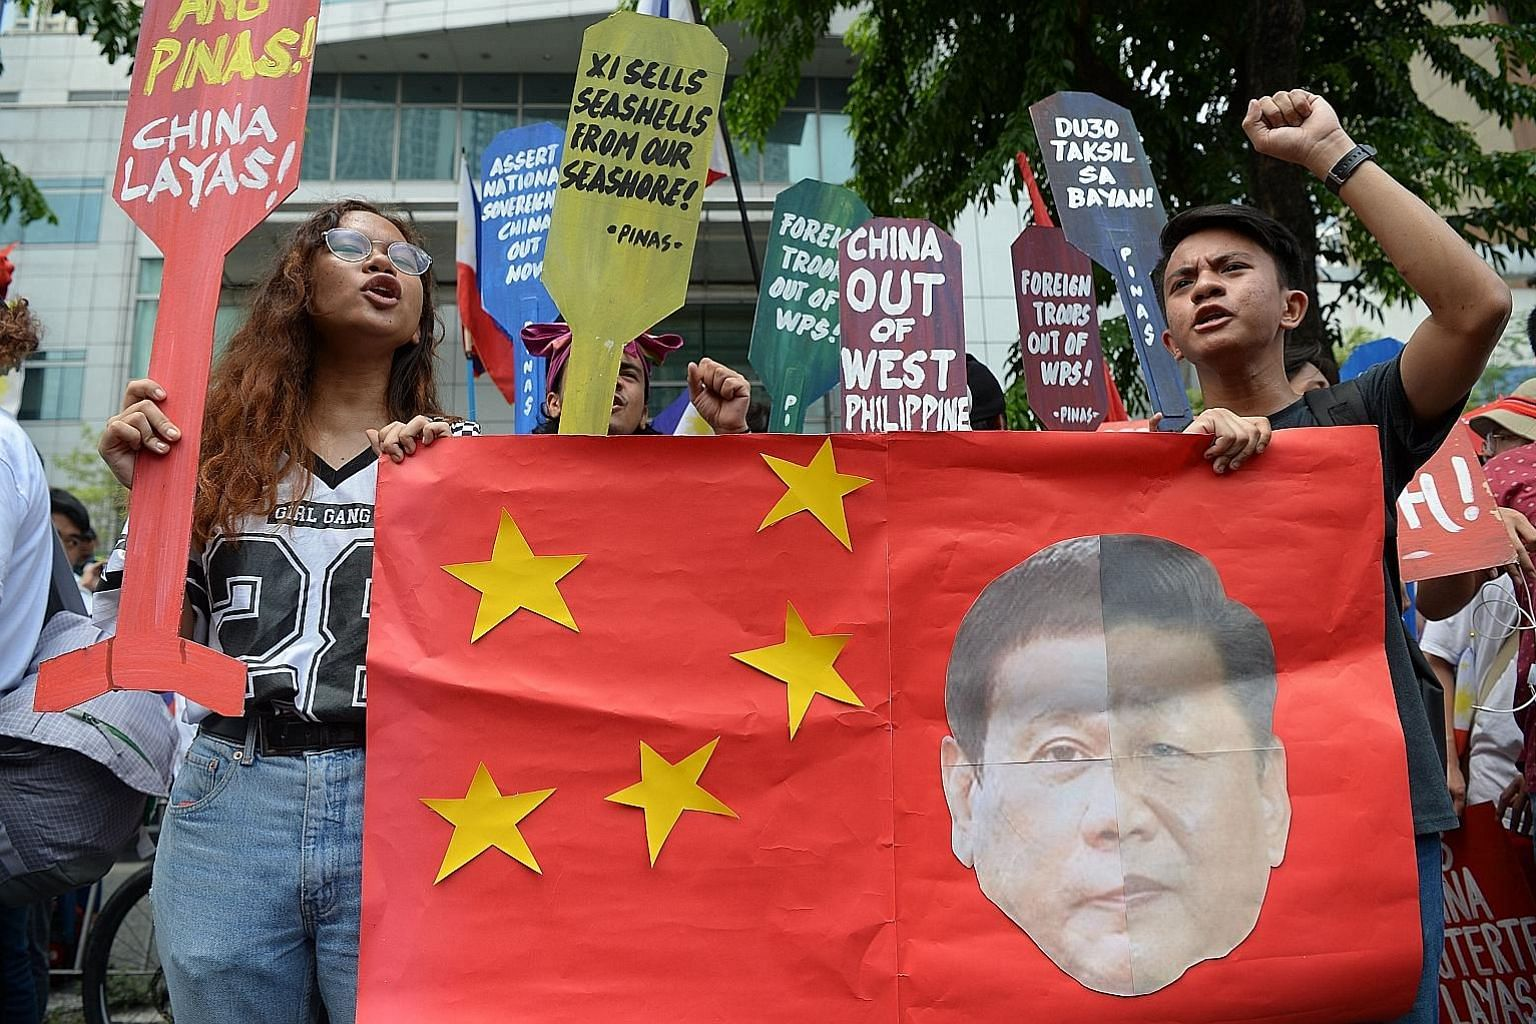 Protesters holding placards and shouting anti-China slogans during a rally in front of the Chinese consulate in Manila last month. They were opposing the Asian superpower's growing sway in the Philippines, as tensions rise over Beijing's presence in